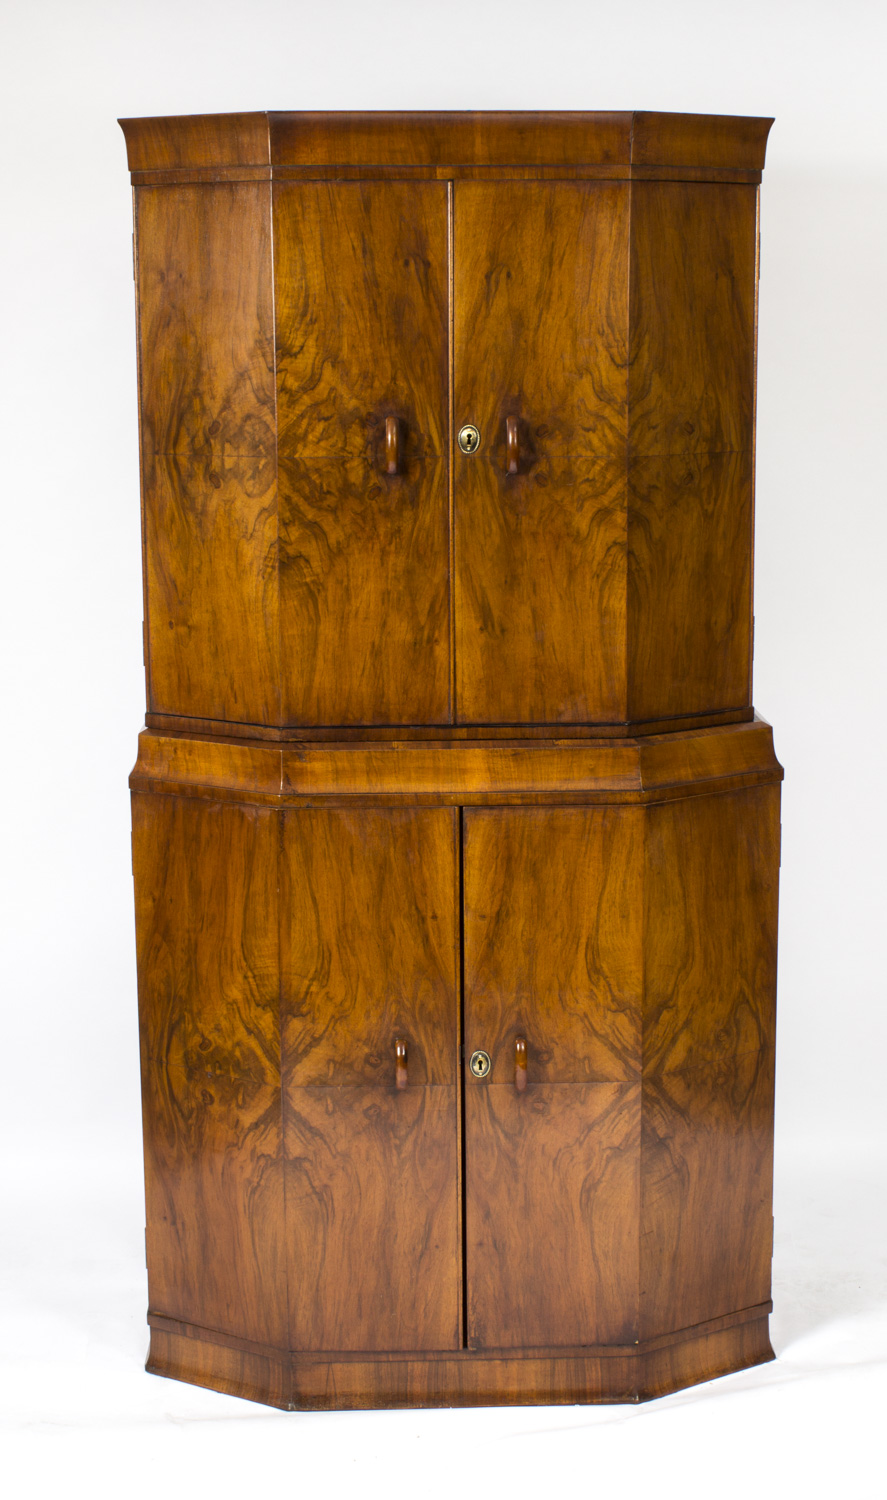 Antique Art Deco Burr Walnut Cocktail Cabinet Or Dry Bar C